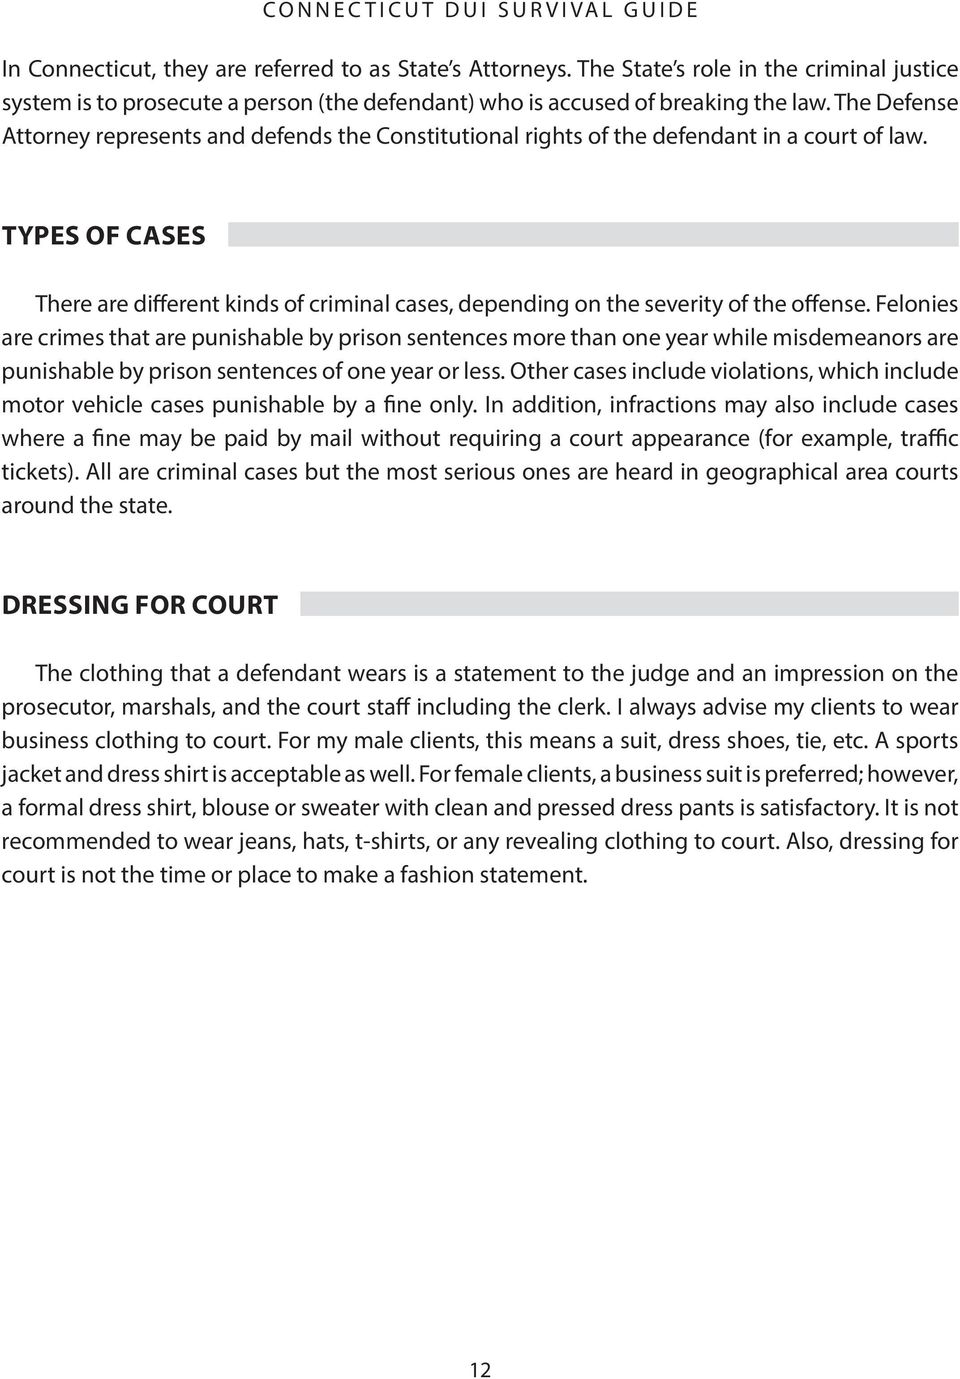 TYPES OF CASES There are different kinds of criminal cases, depending on the severity of the offense.